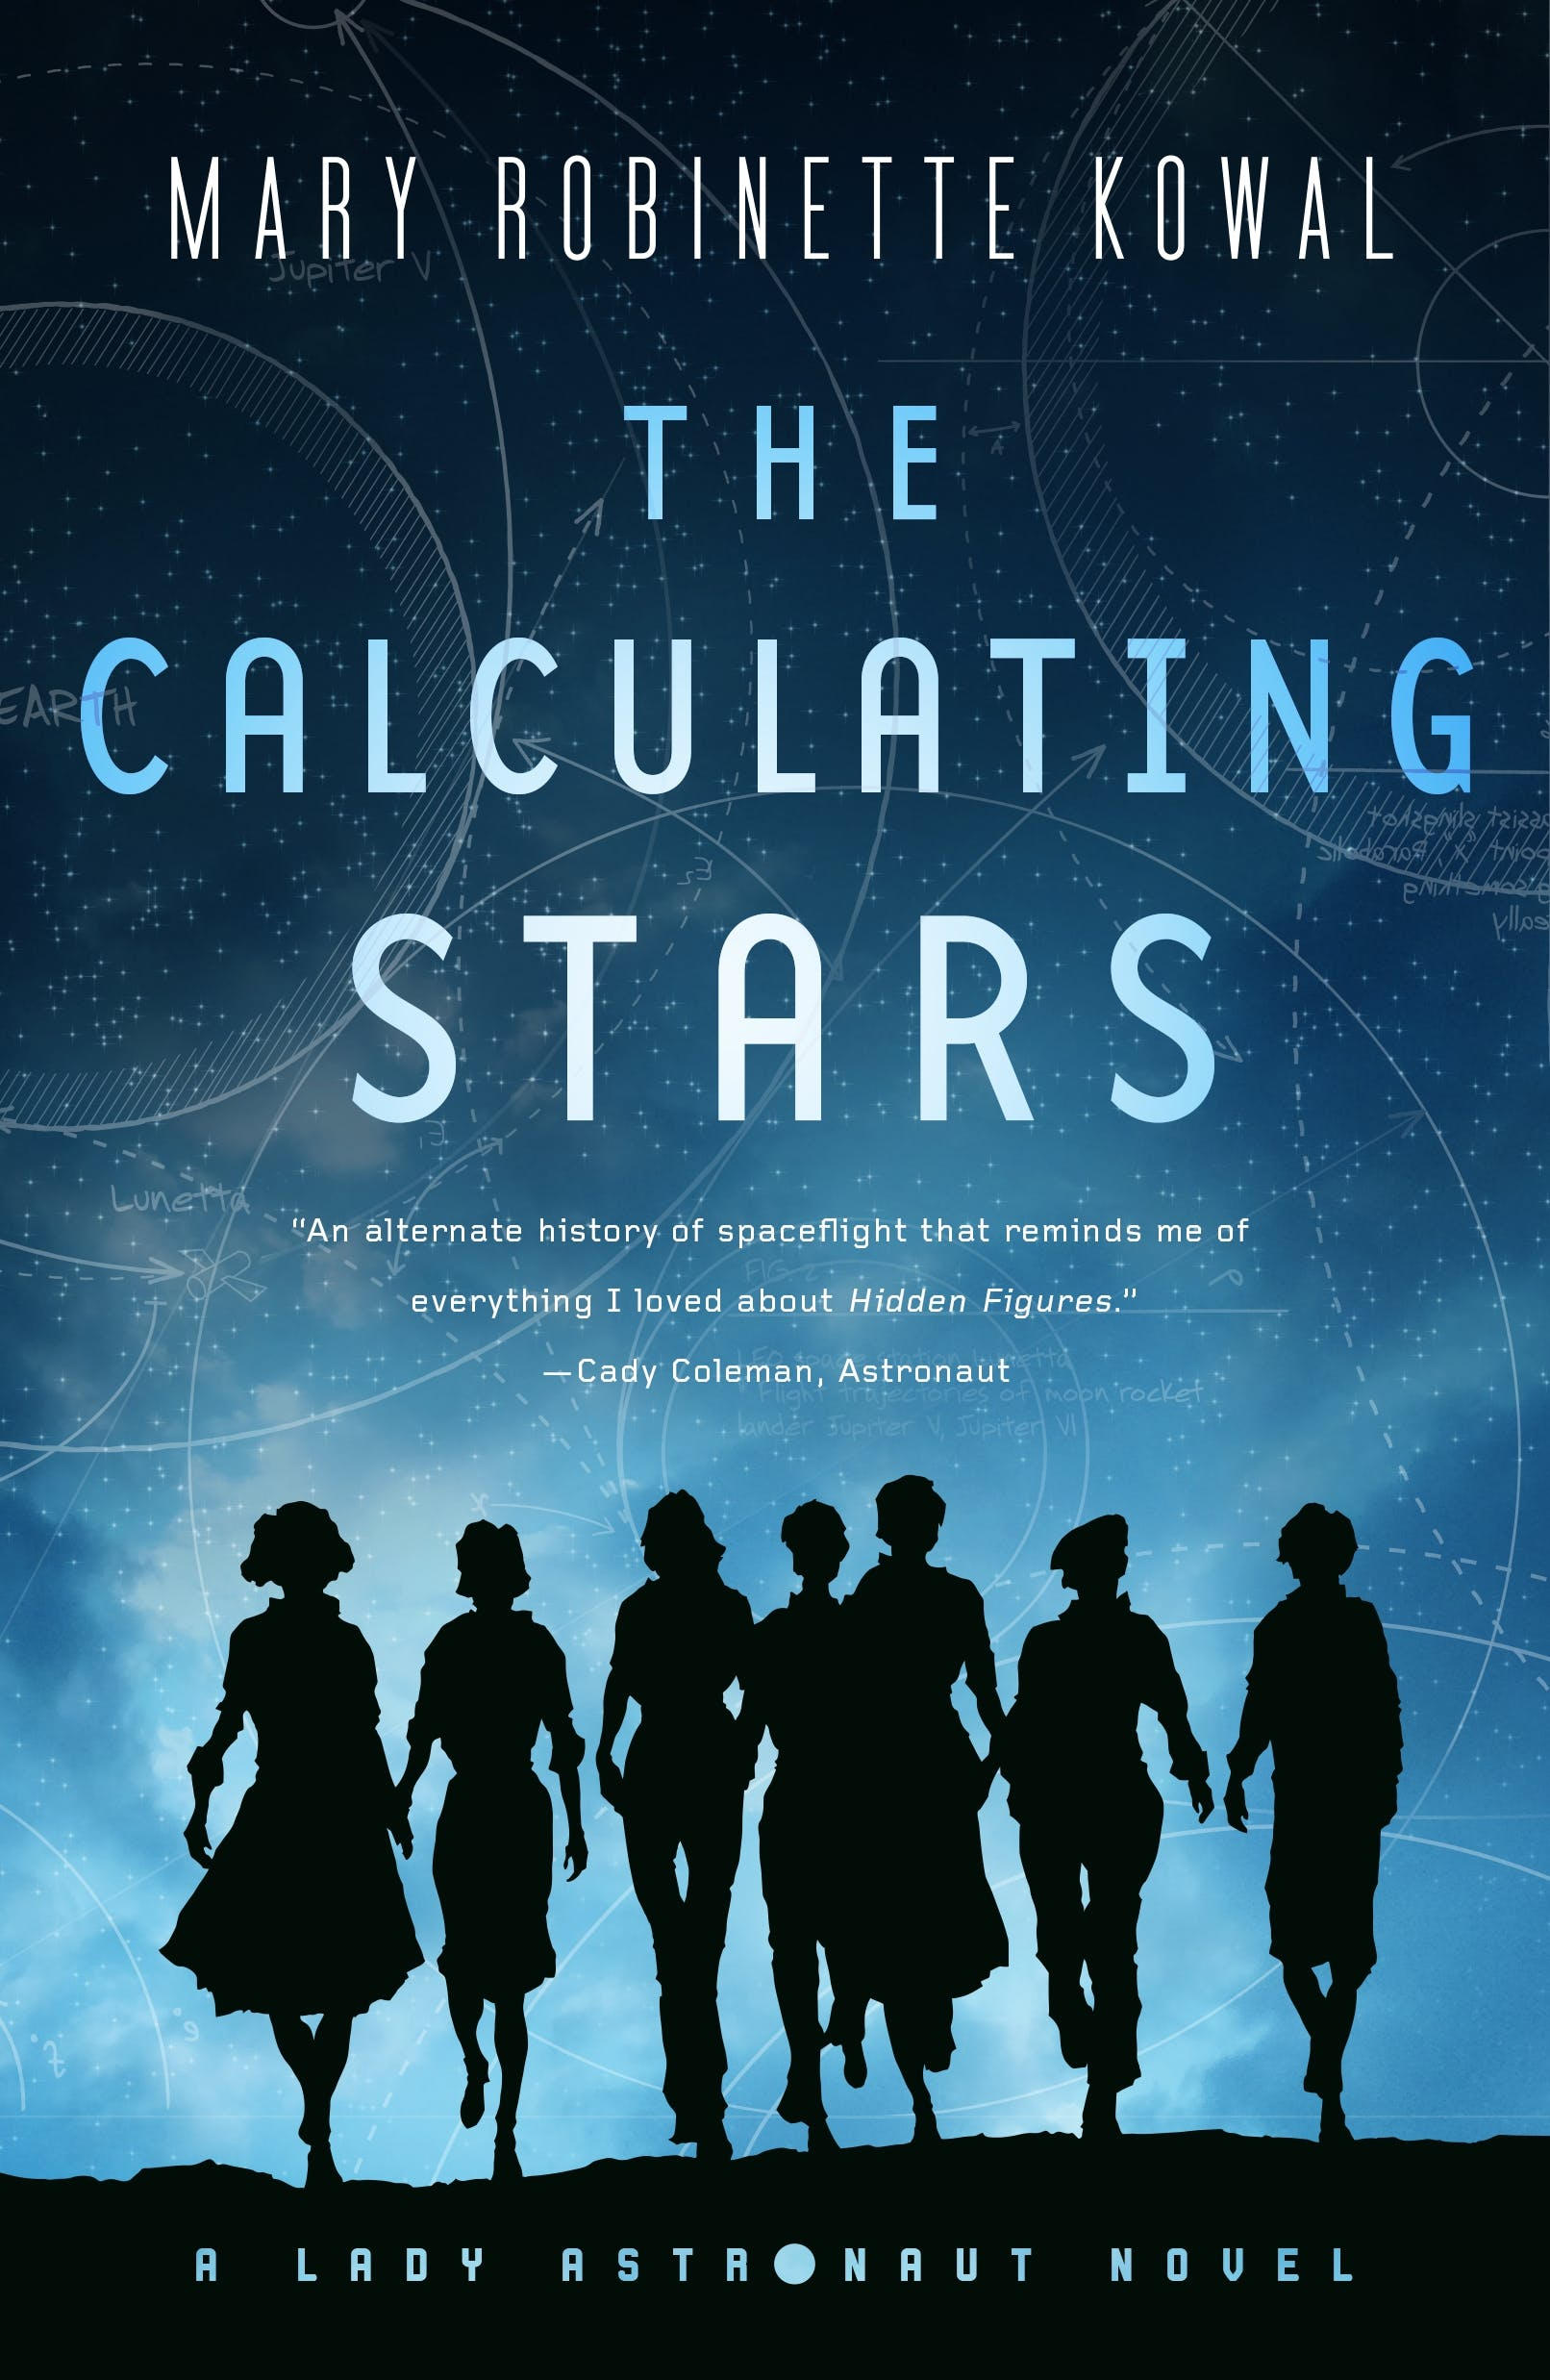 Image of The Calculating Stars